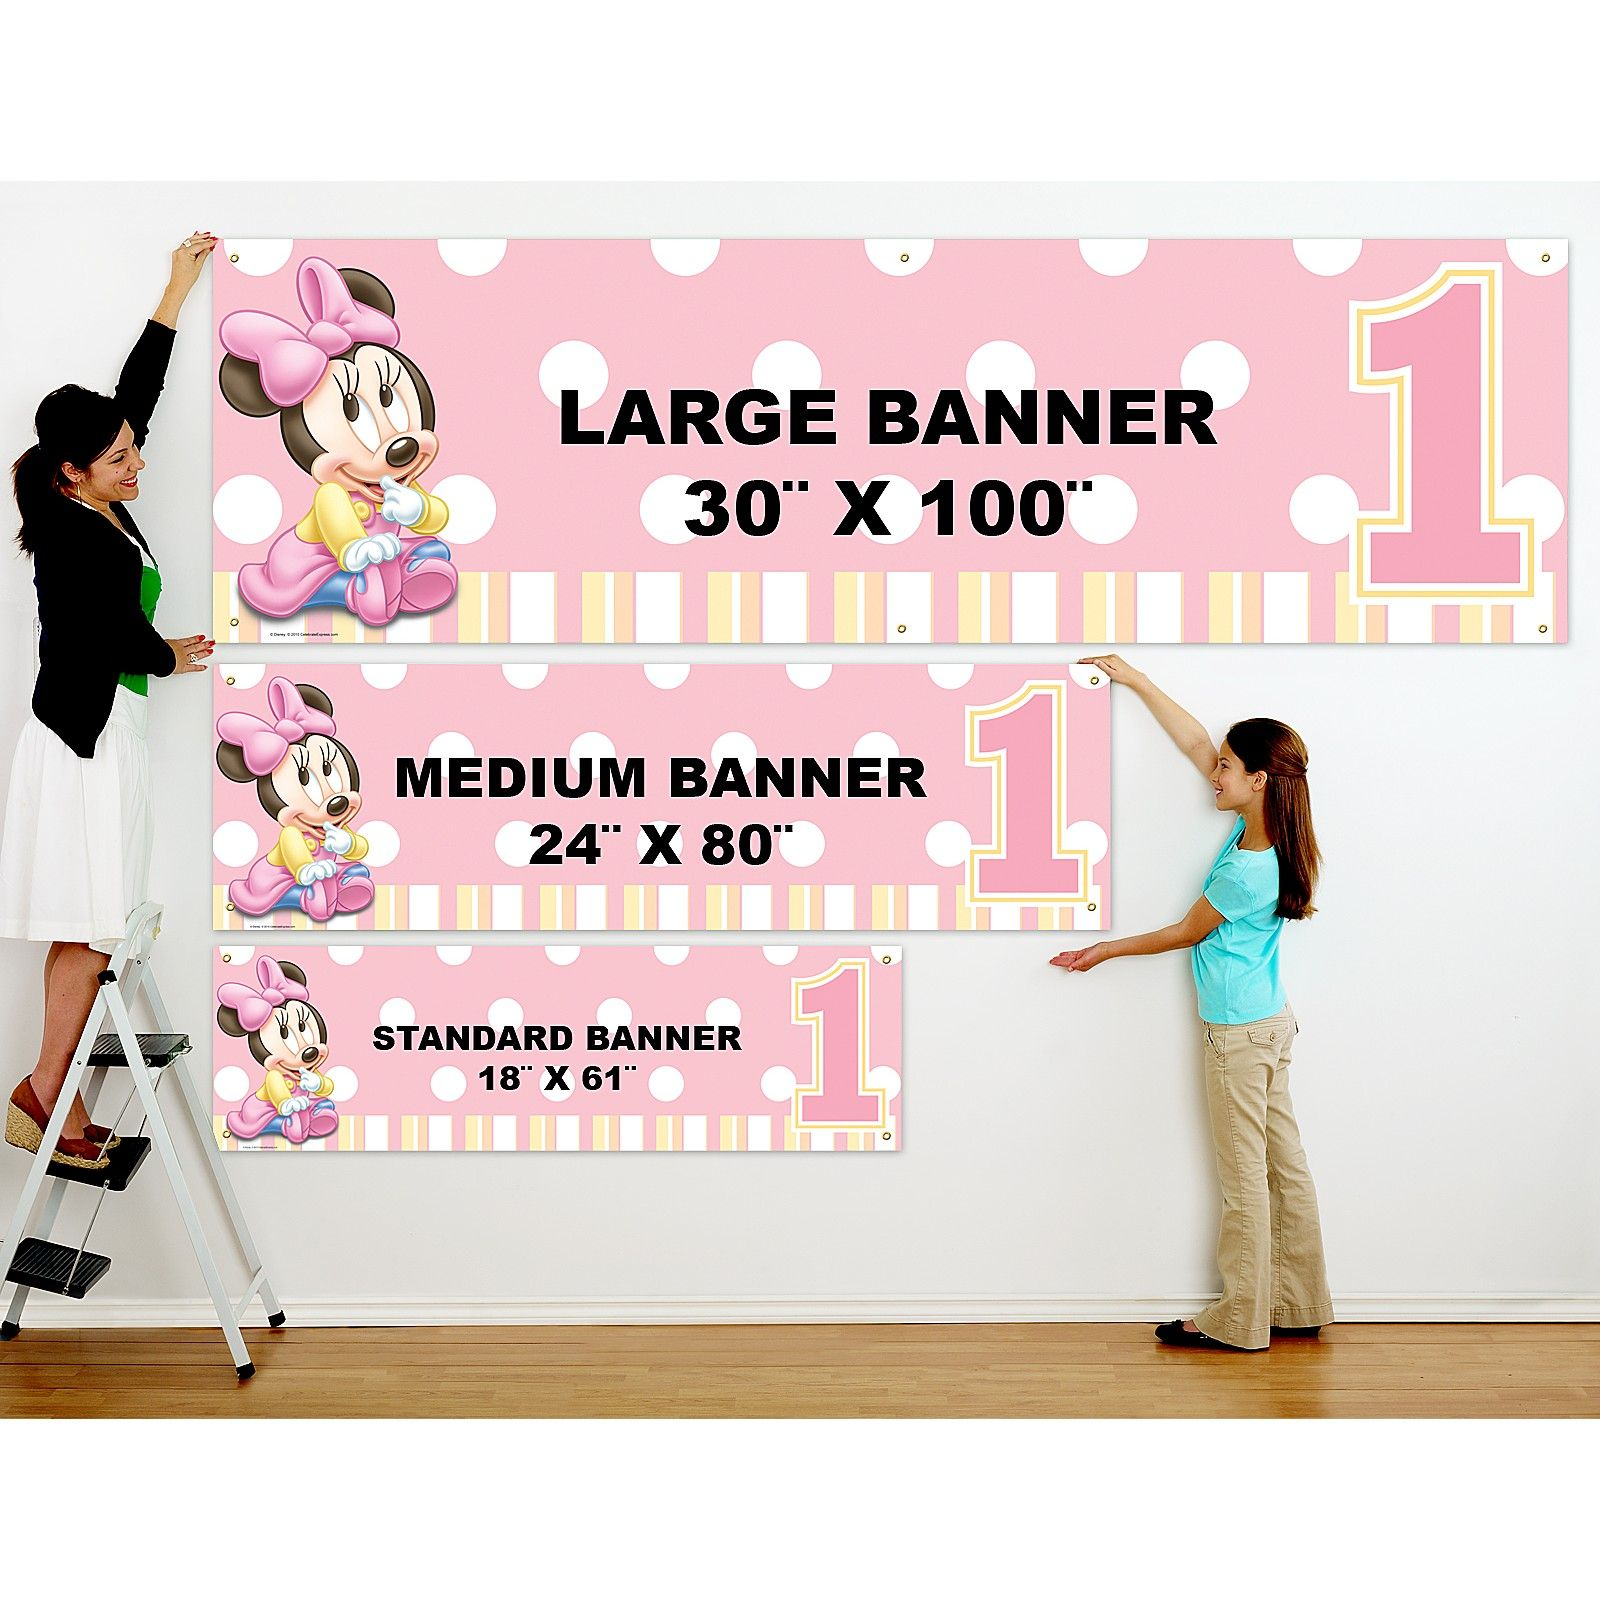 personalized birthday banners for 1st birthday ; b1770c0e0e97abda2e8cc87f250eafdc